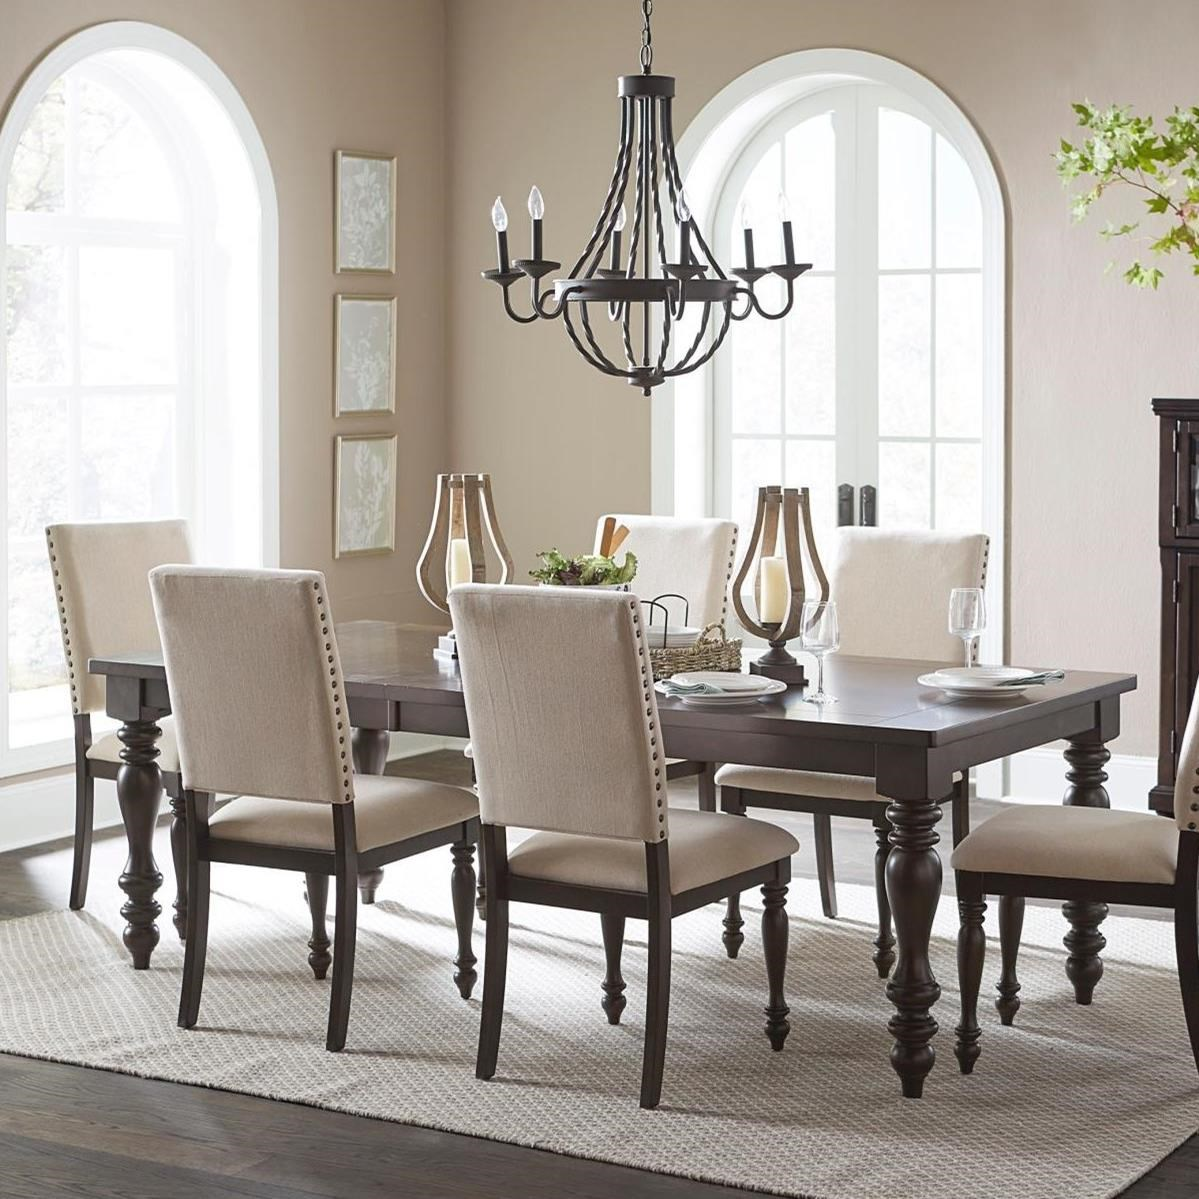 Begonia Dining Table by Homelegance at Value City Furniture